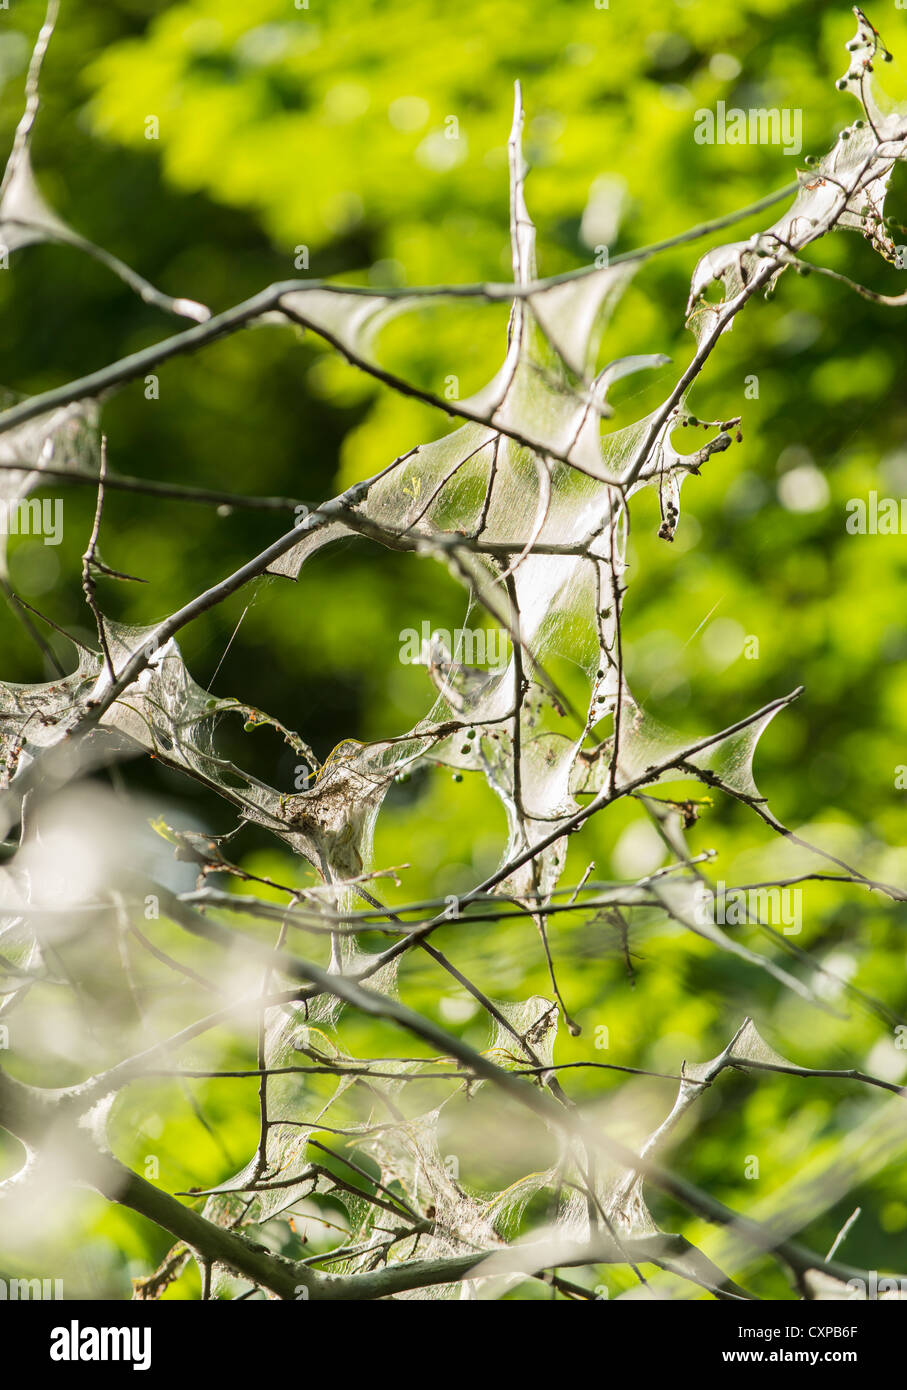 Webs of the tent caterpillar in the branches of a tree Stock Photo